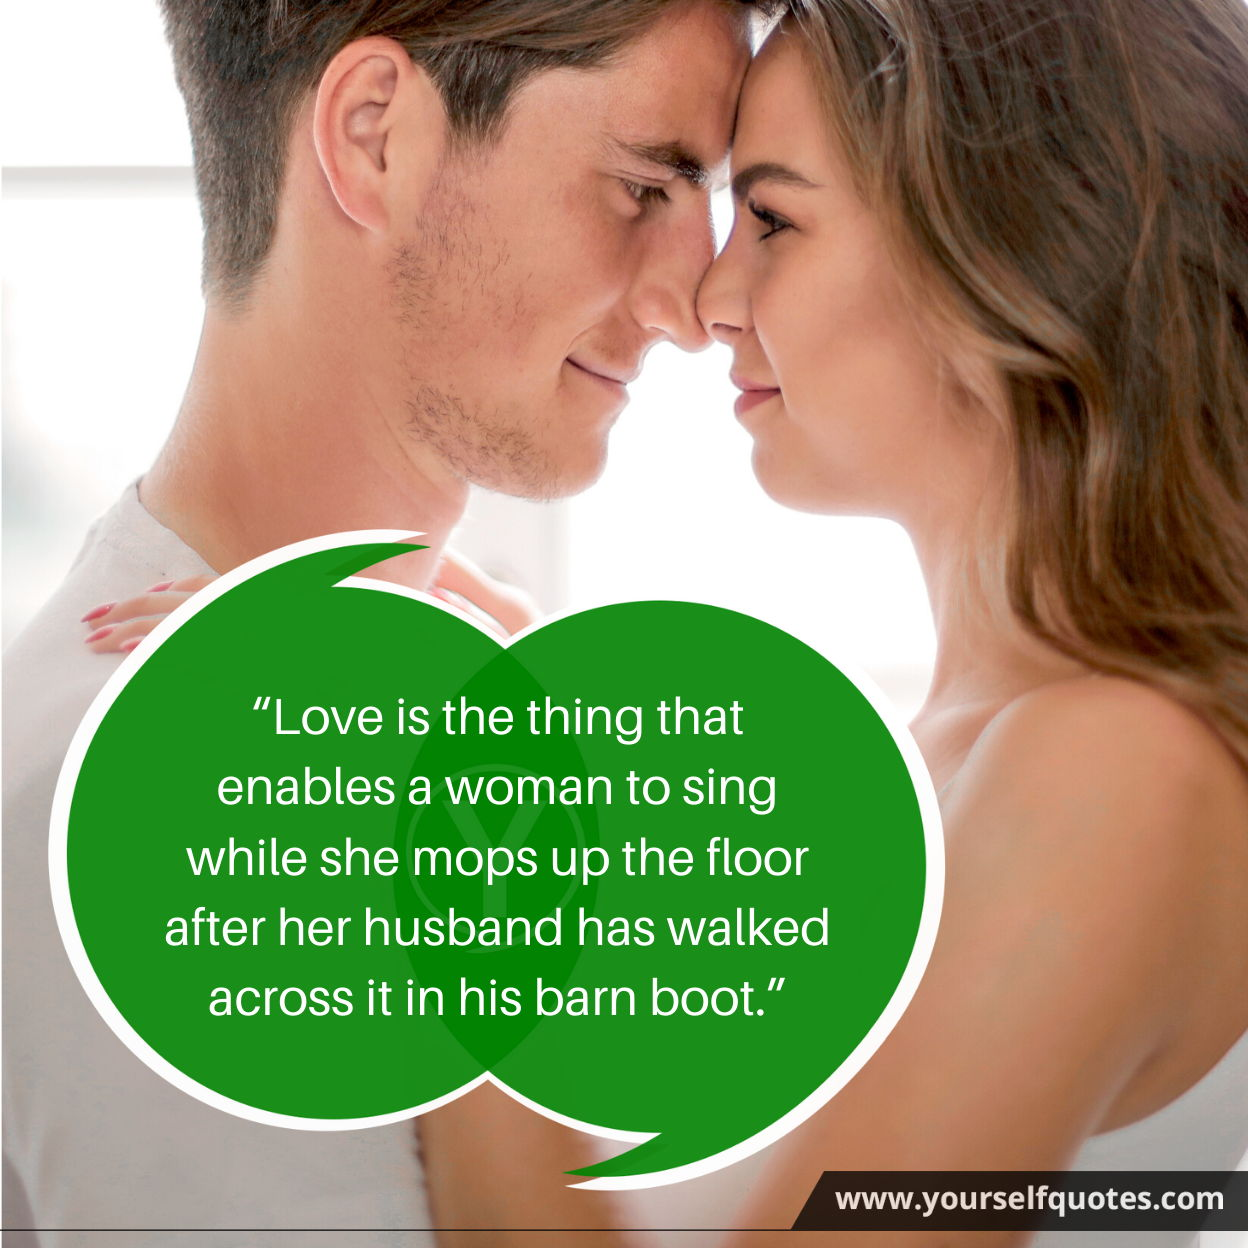 Great Quotes on Love